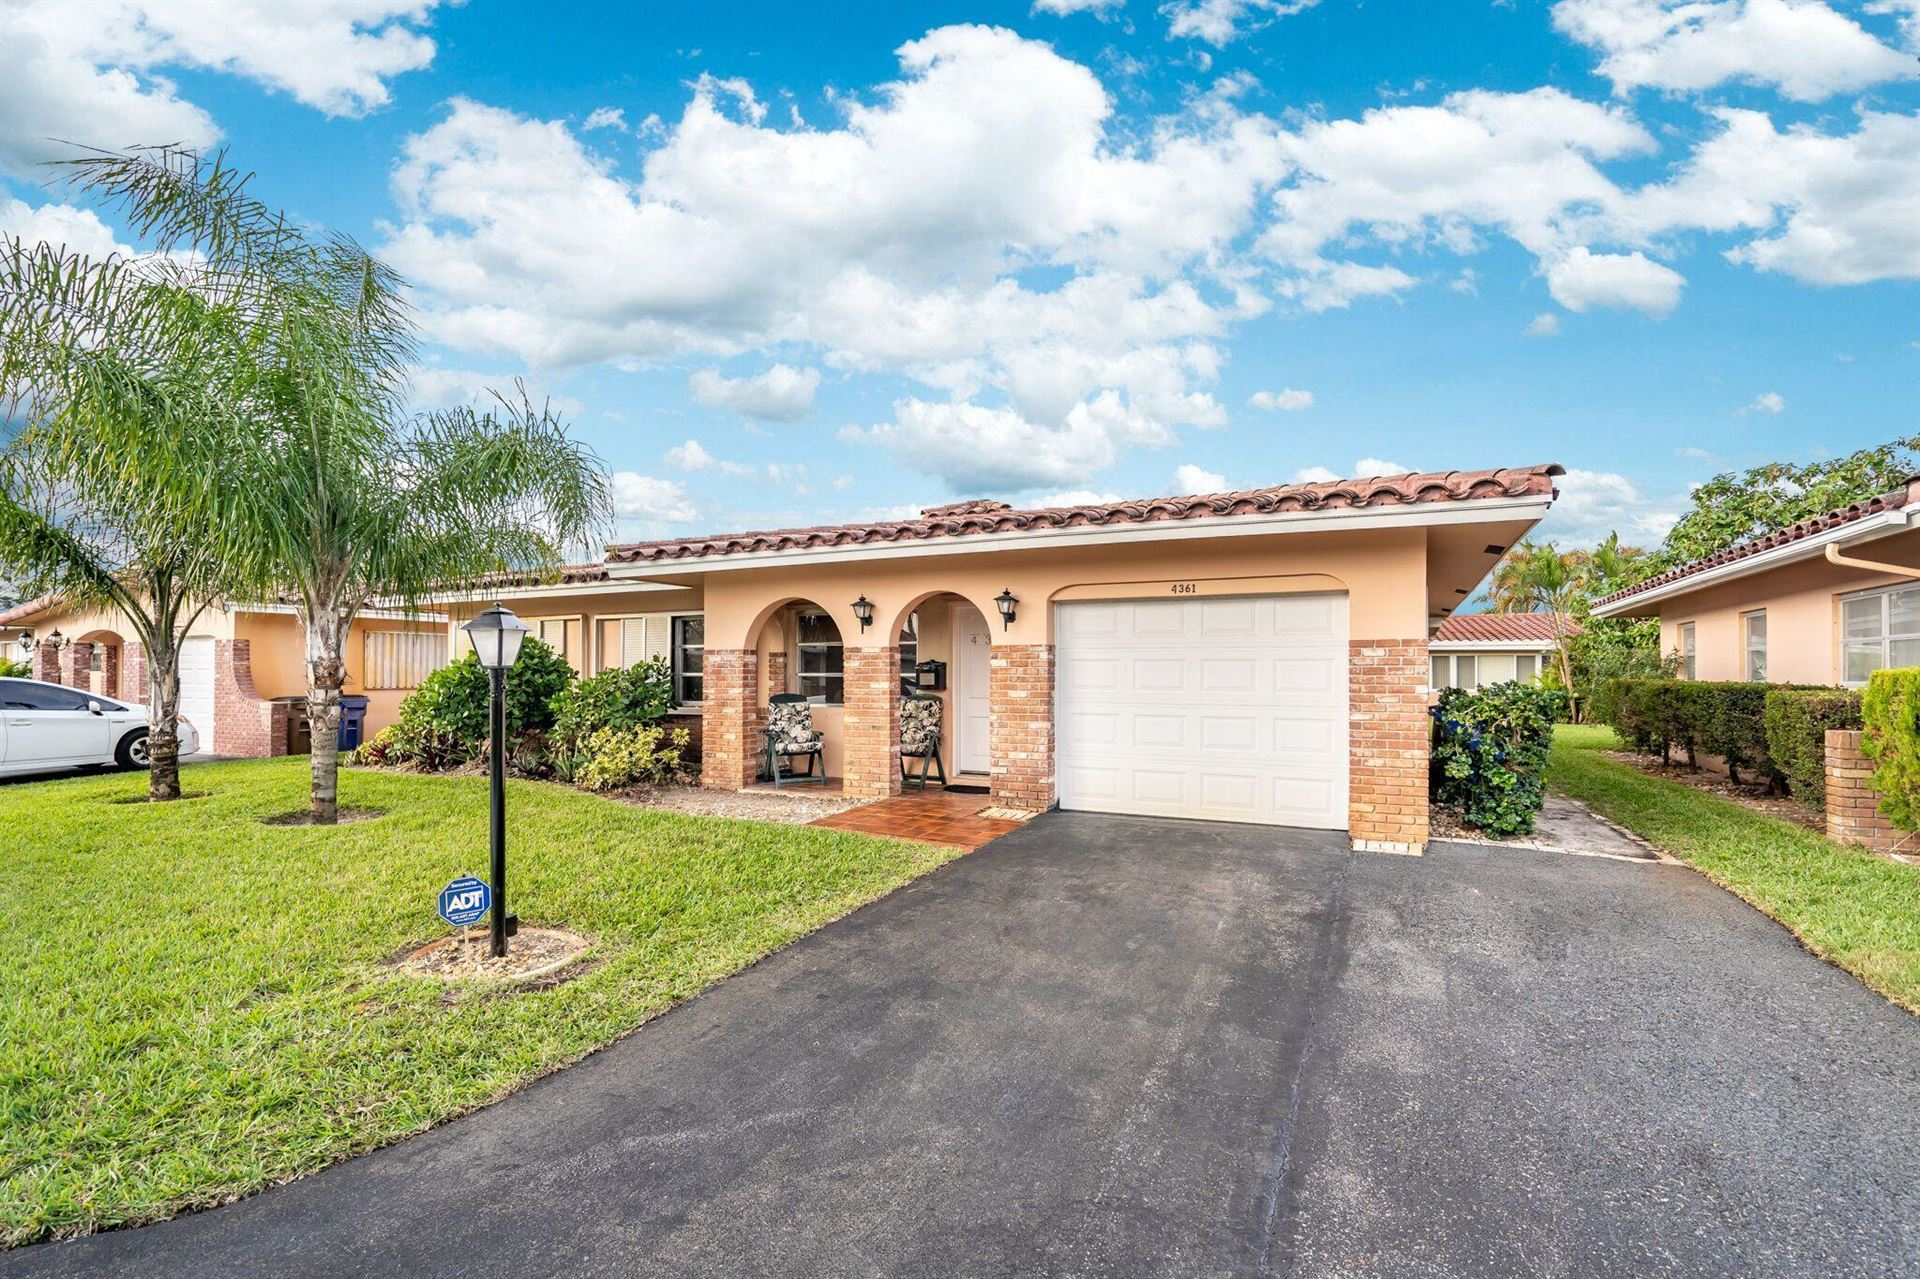 4361 NW 12 Drive, Deerfield Beach, FL 33064 - #: RX-10599190